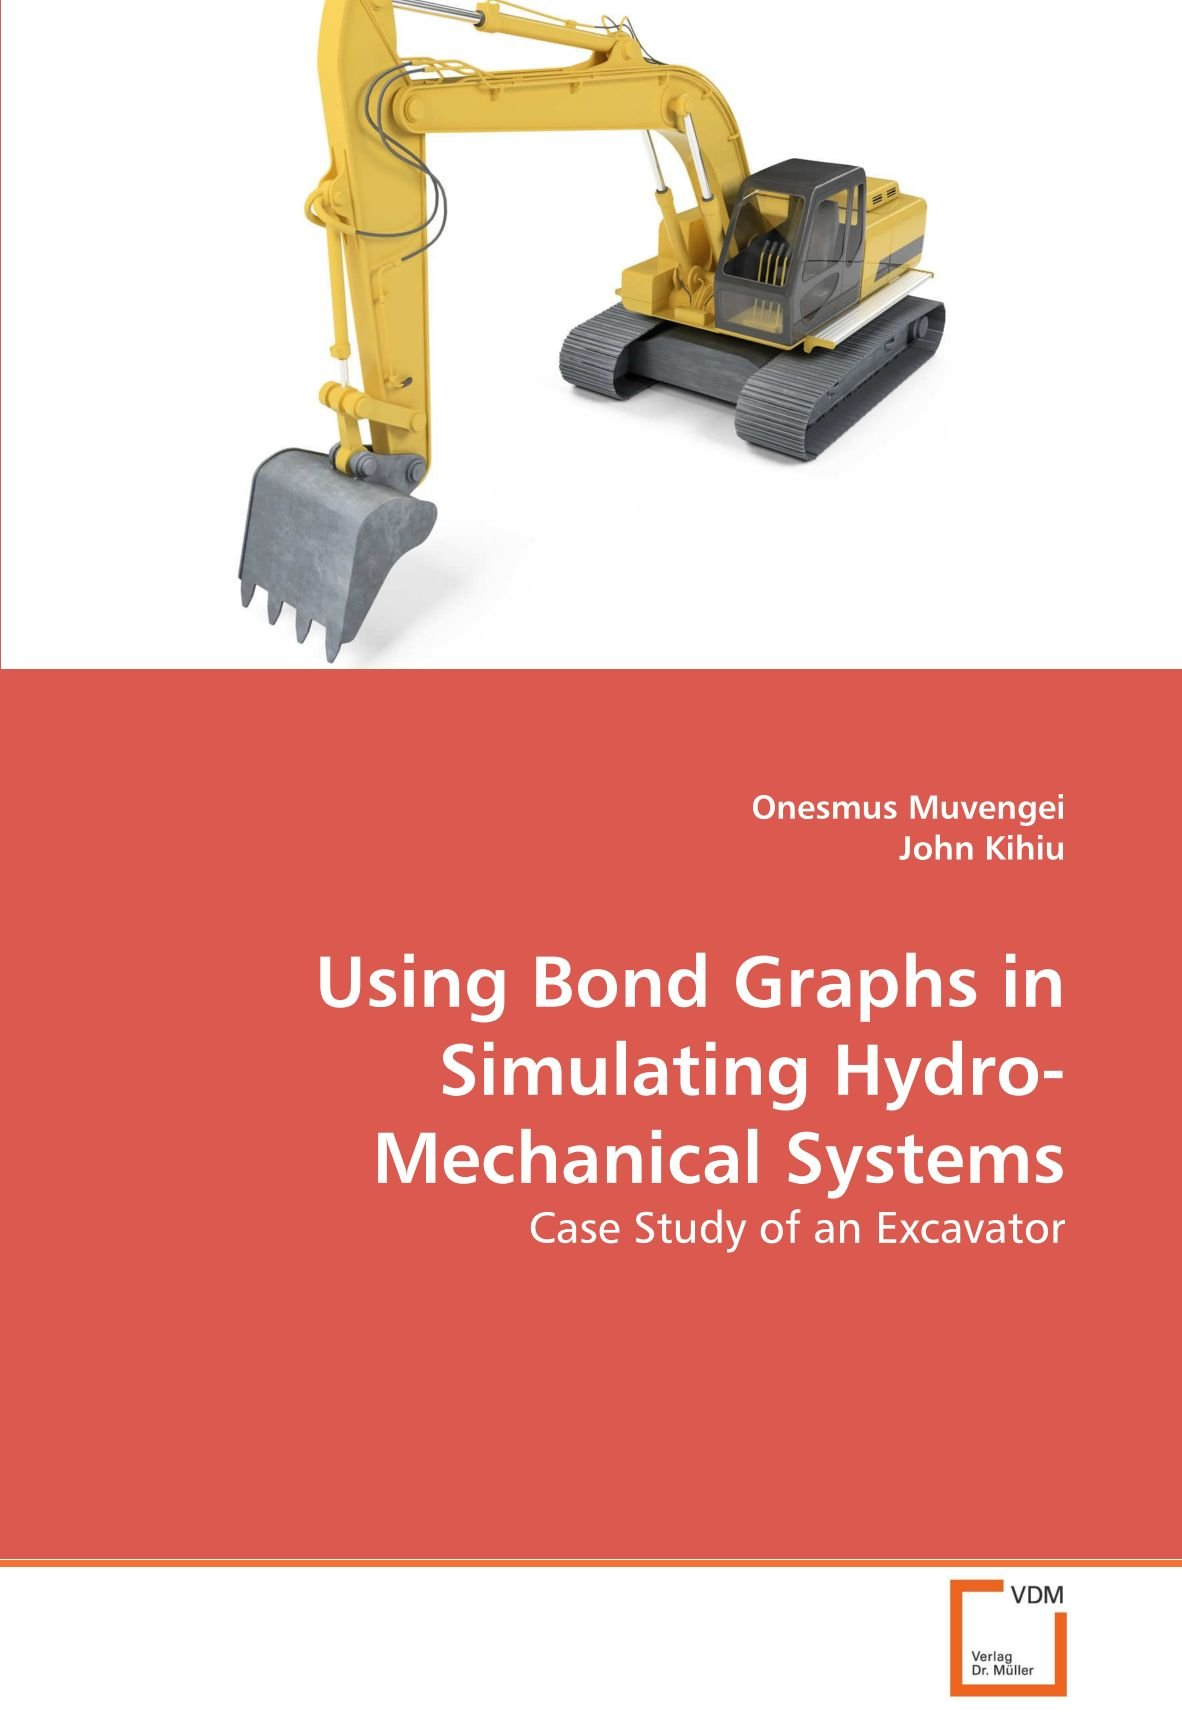 Using Bond Graphs in Simulating Hydro-Mechanical Systems: Case Study